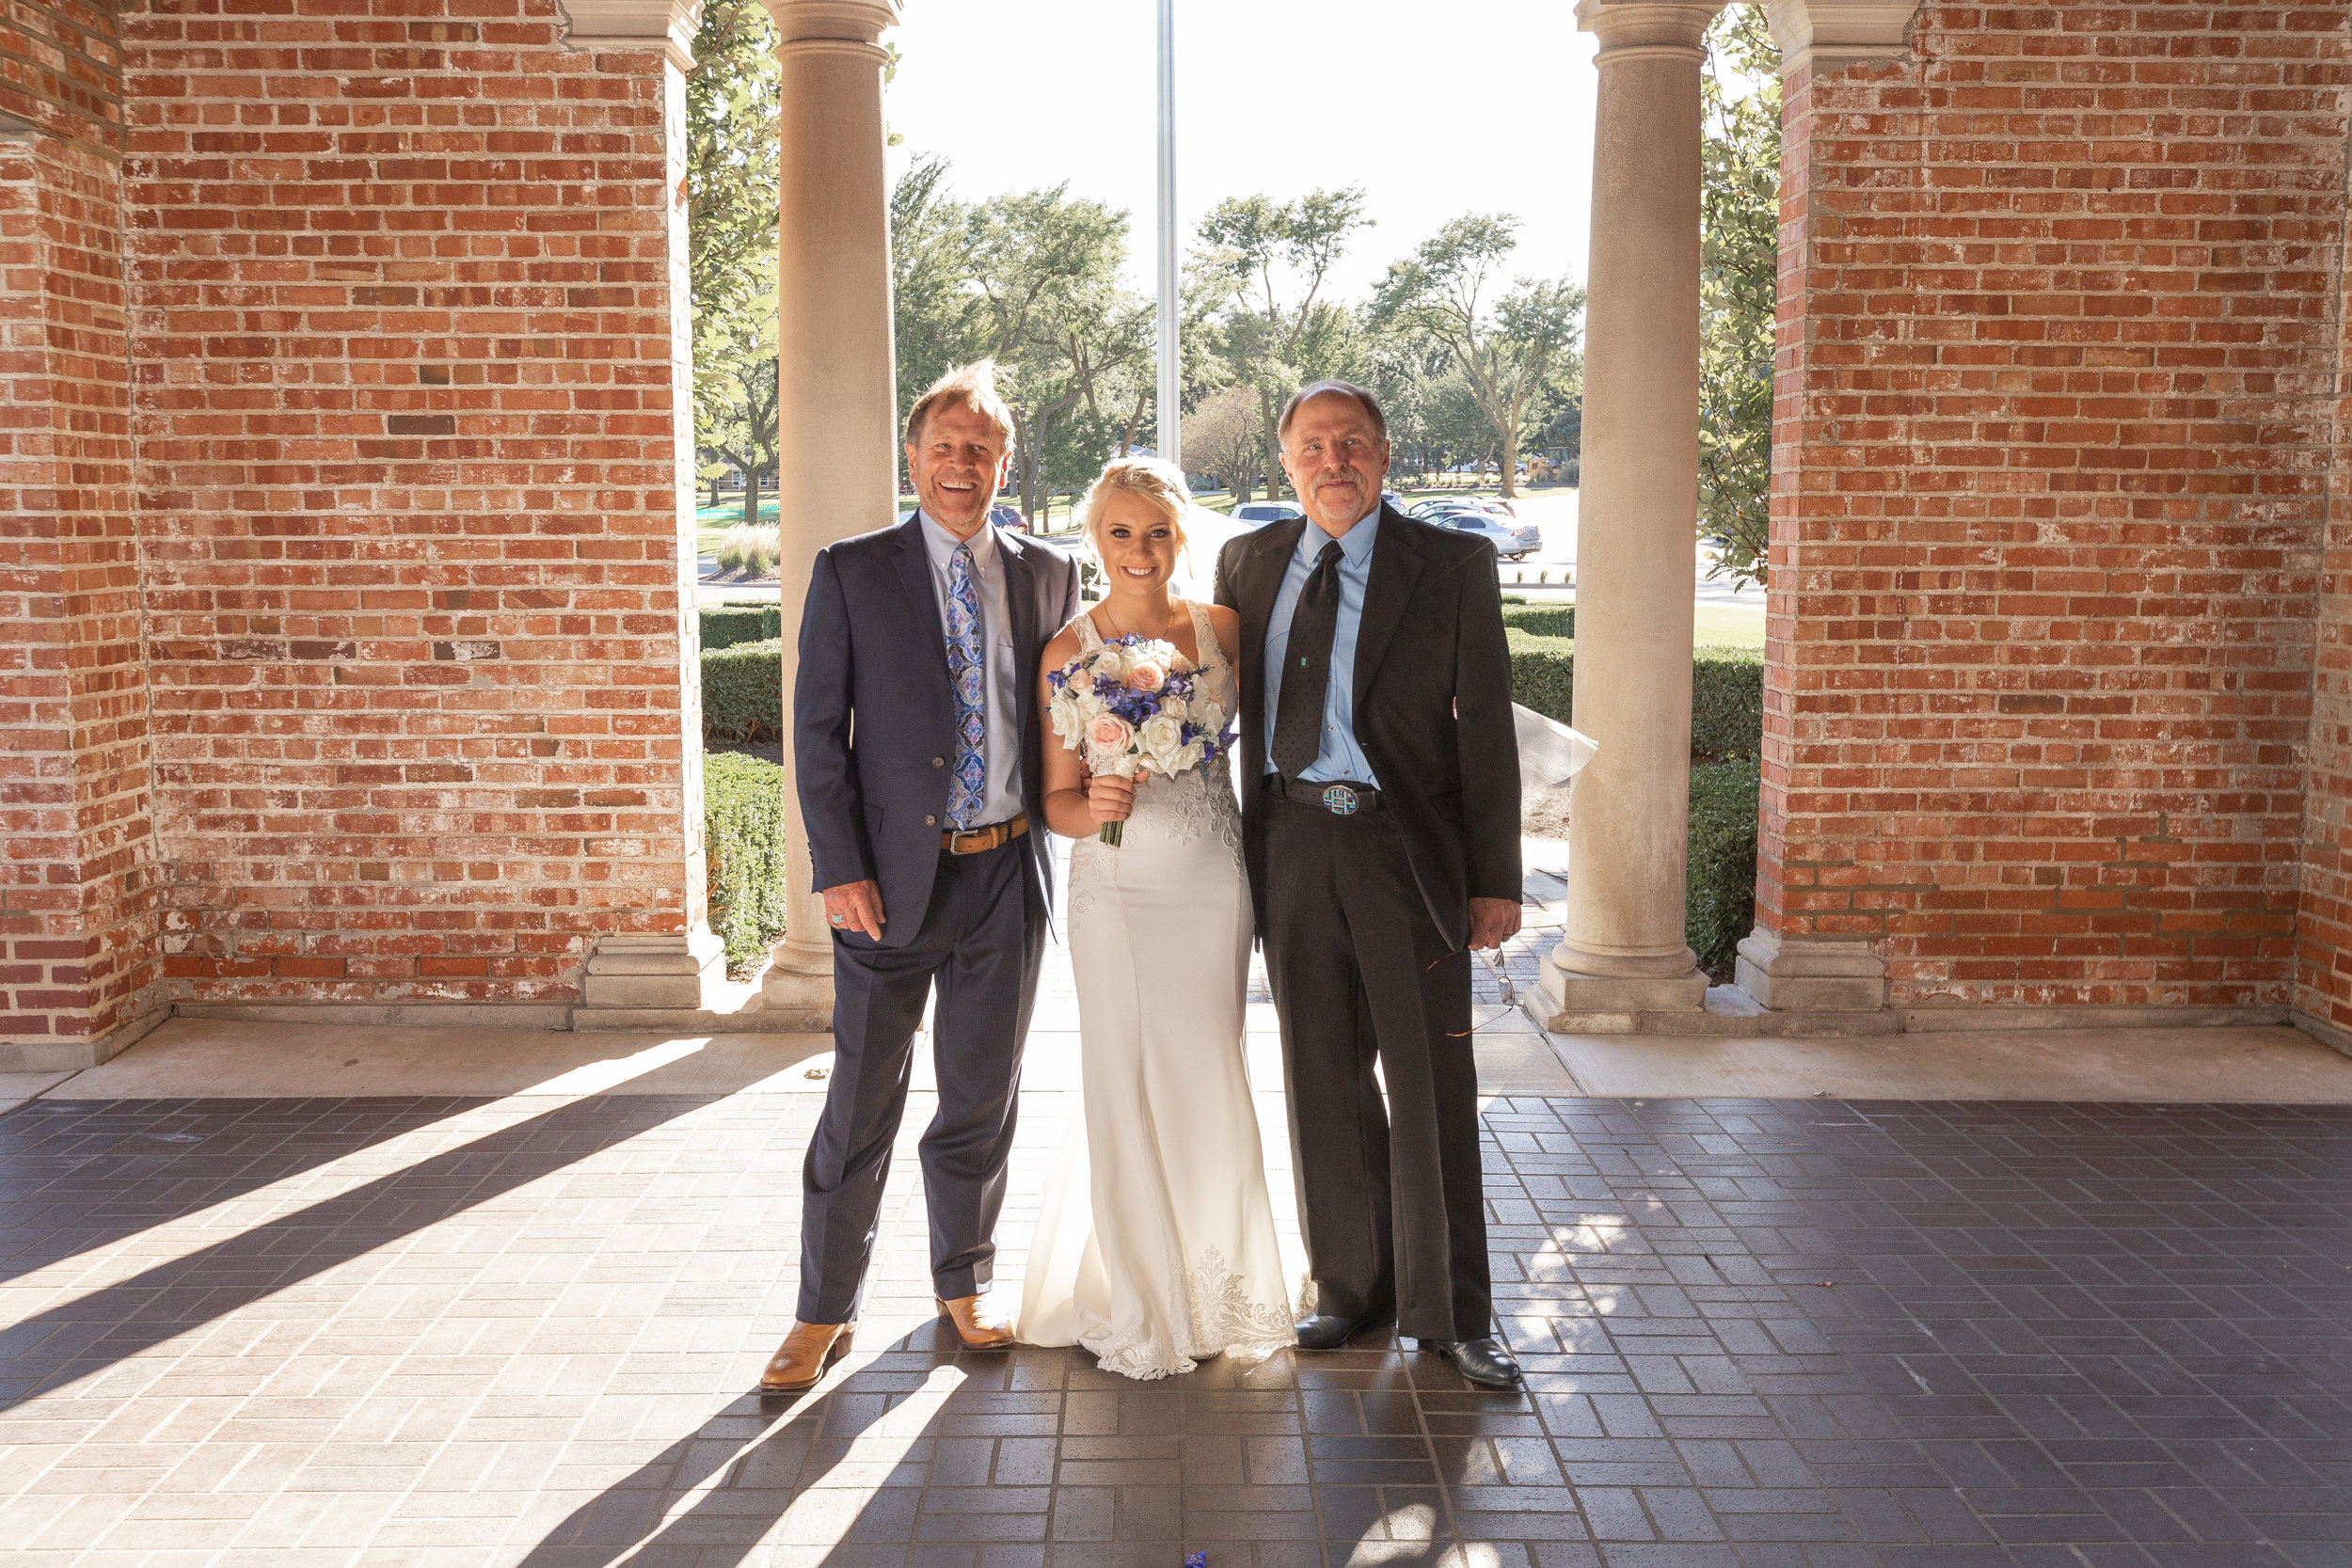 C_Wedding_Tronick, Megan & Andrew_09.22.18-607.JPG